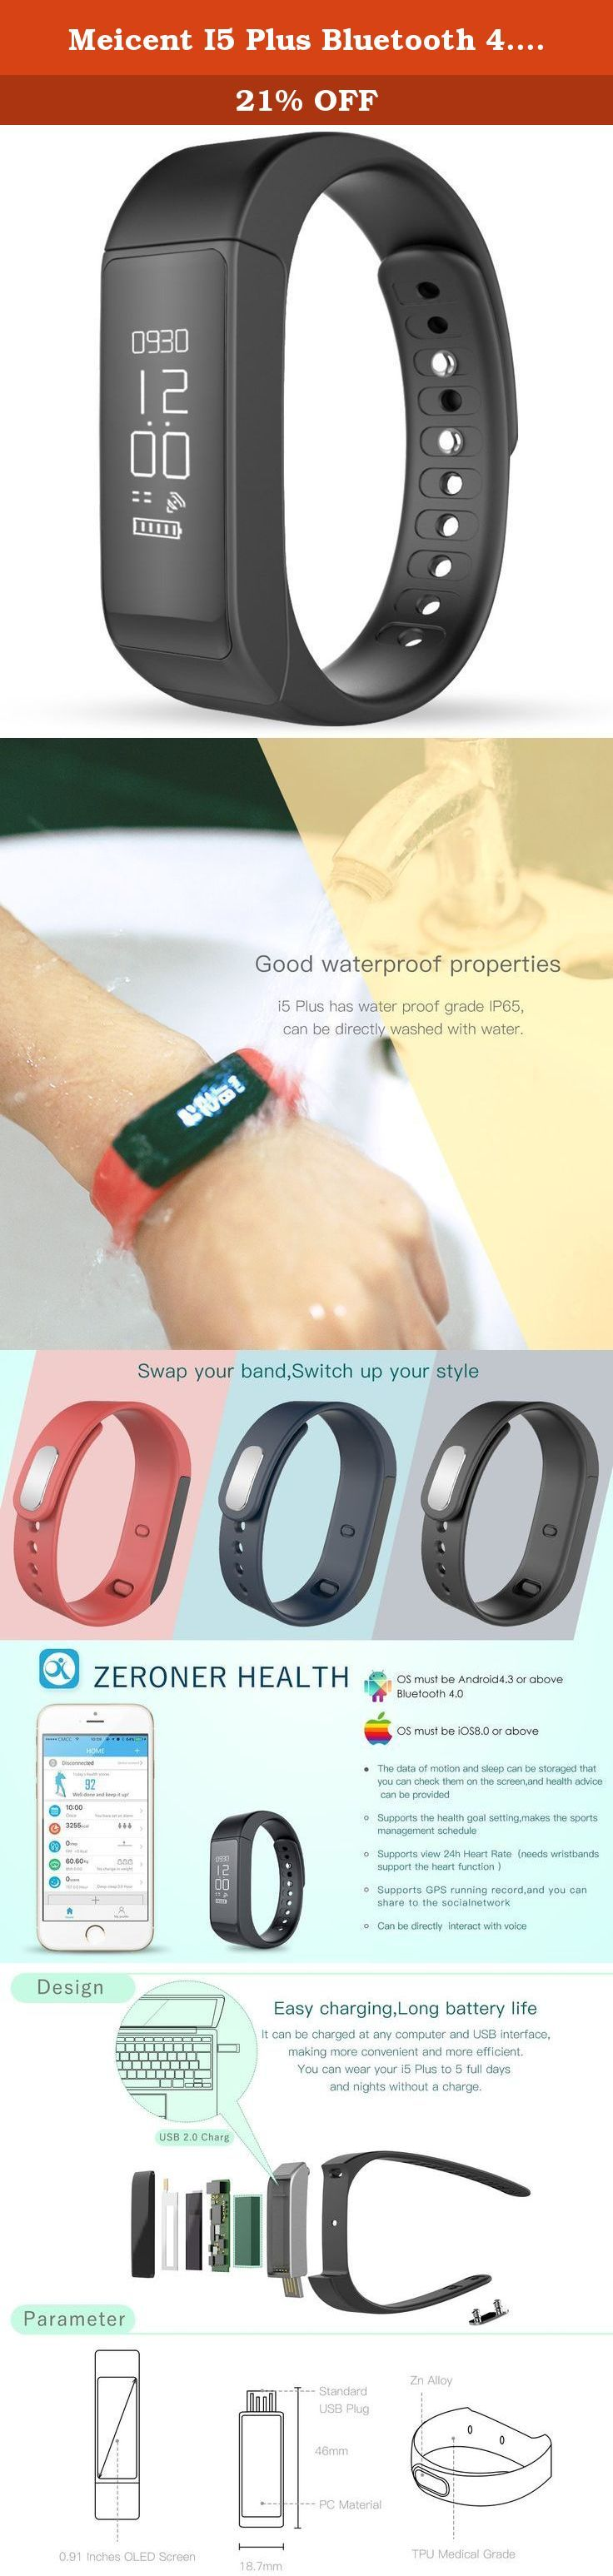 Meicent I5 Plus Bluetooth 4.0 Wireless Fitness Tracker / Activity Tracker Smart Watch (Black). Product Specifications Model: MT-I3HR Color: Black, Red, Blue System: iPhone iOS 8.0 or above, Android 4.4 or above. Wristband Material: TPU Medical Grade Case Material :PC Net Weight: 18 g Screen: OLED 0.91 inch Resolution: 128 x 64 Bluetooth: V4.0 Waterproof: IP67 Battery: 75mAh Li-battery Body Size: 49*19*10mm Wristbands length: 252mm Operating Temperature: -20 ℃ to 60 ℃ Weight: 140 g Package...